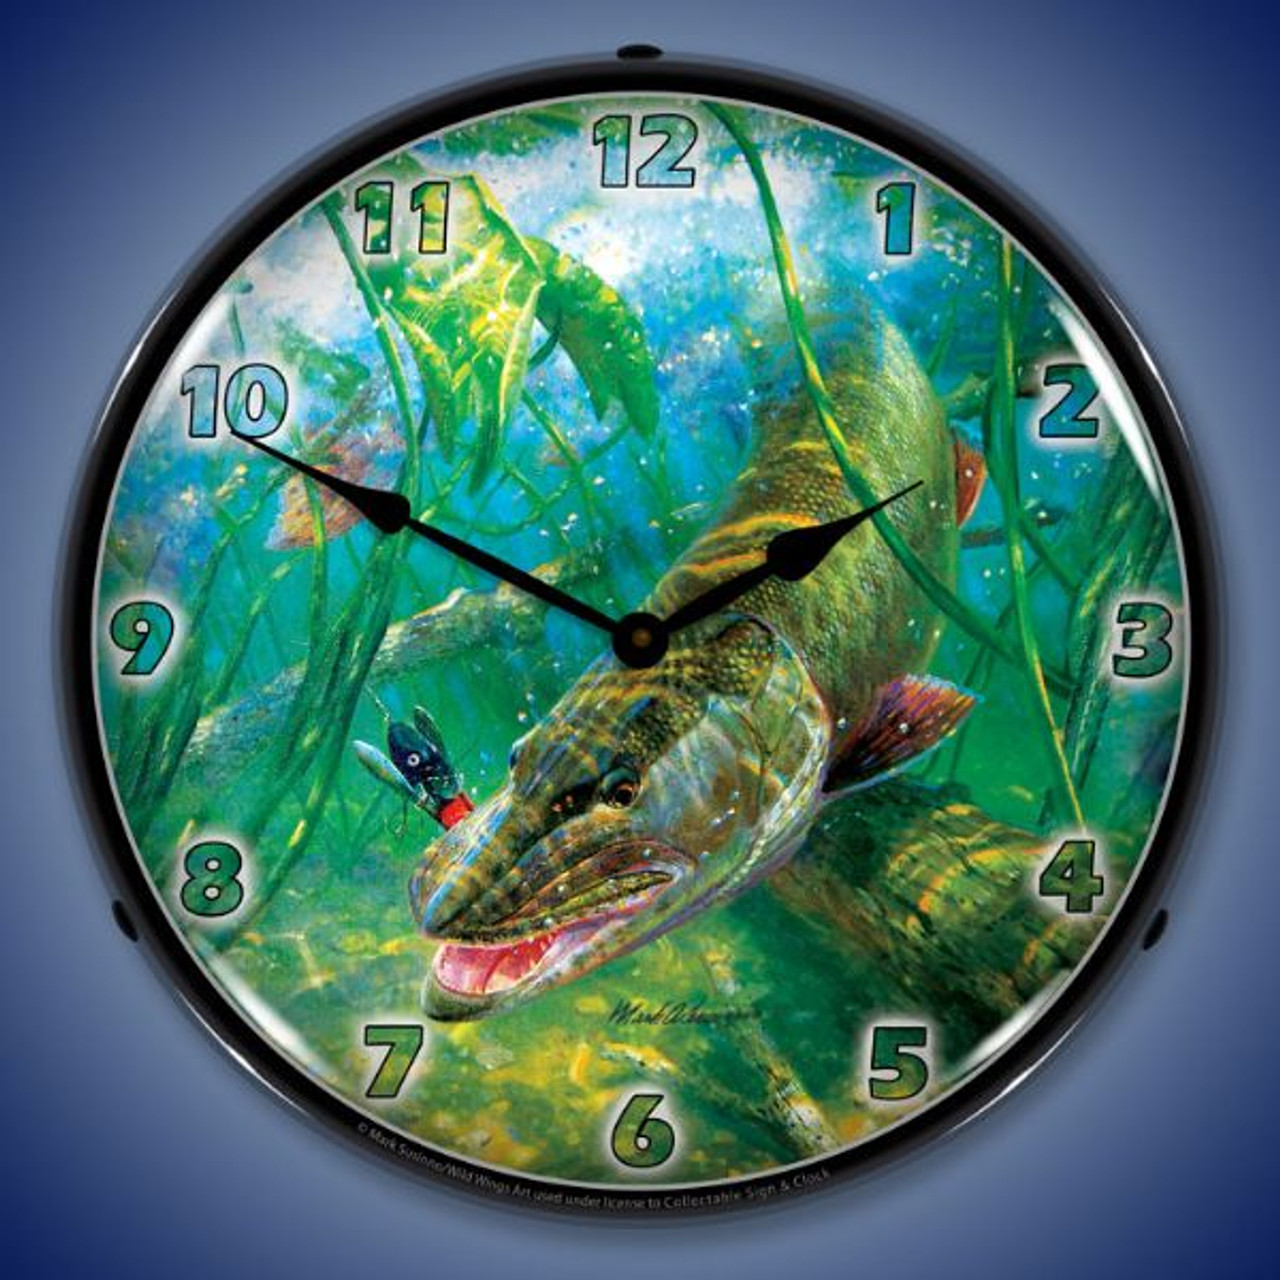 In The Thick of It Muskie Lighted Wall Clock 14 x 14 Inches